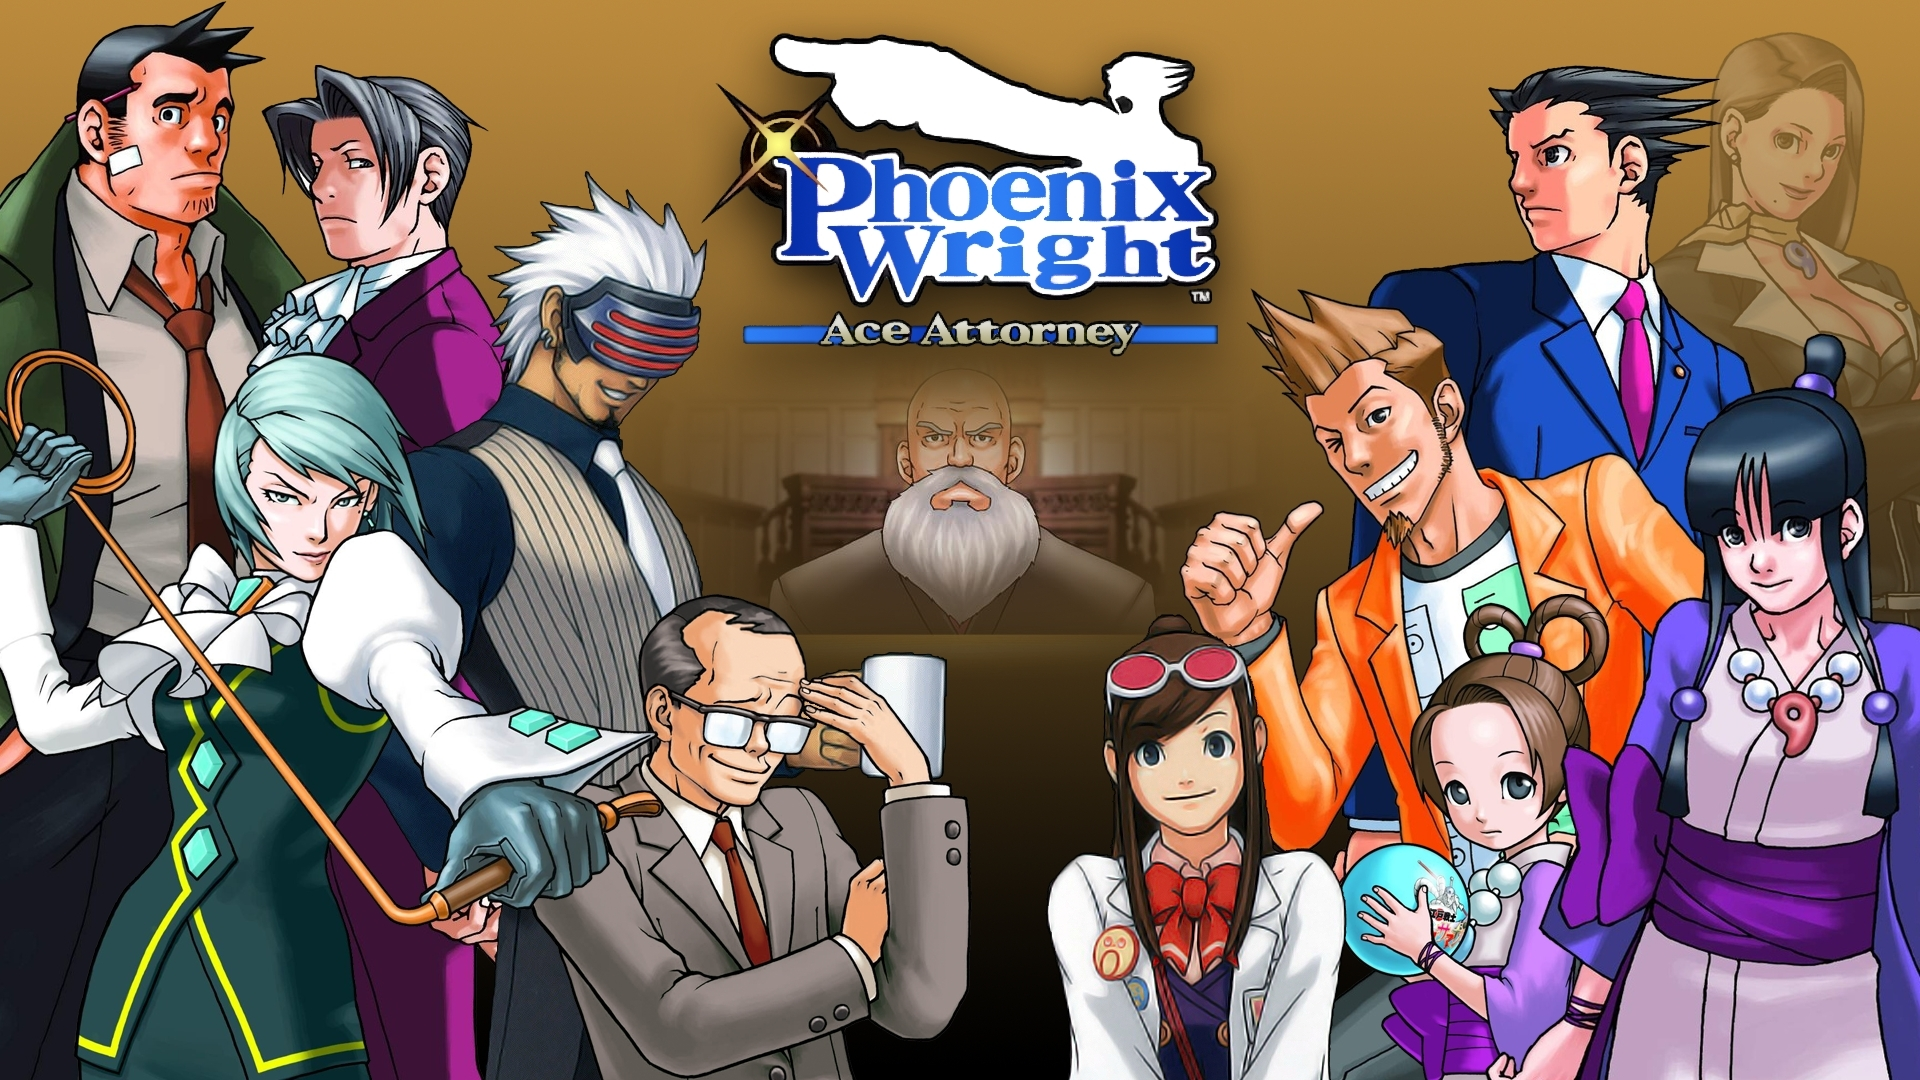 Phoenix Wright images Wallpaper 2 HD wallpaper and 1920x1080